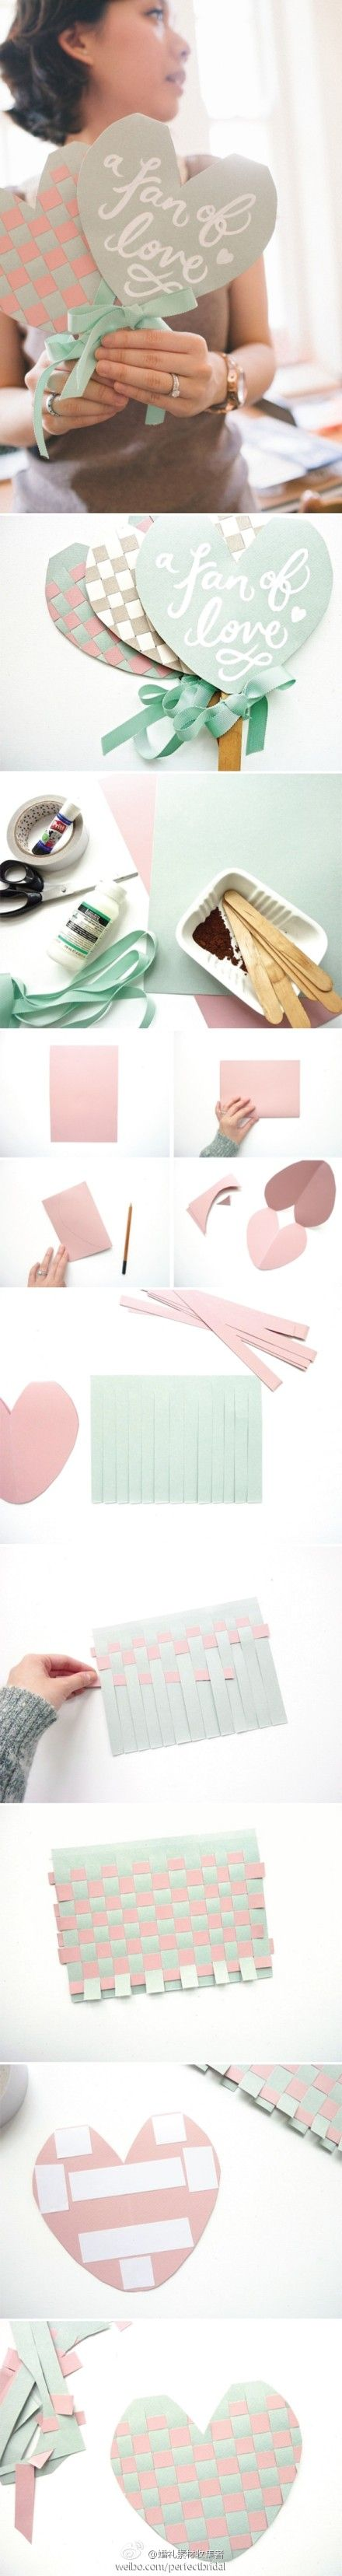 Outdoor wedding idea, fan. OMG this is so going to be used...one day!!! Check it out MOM!